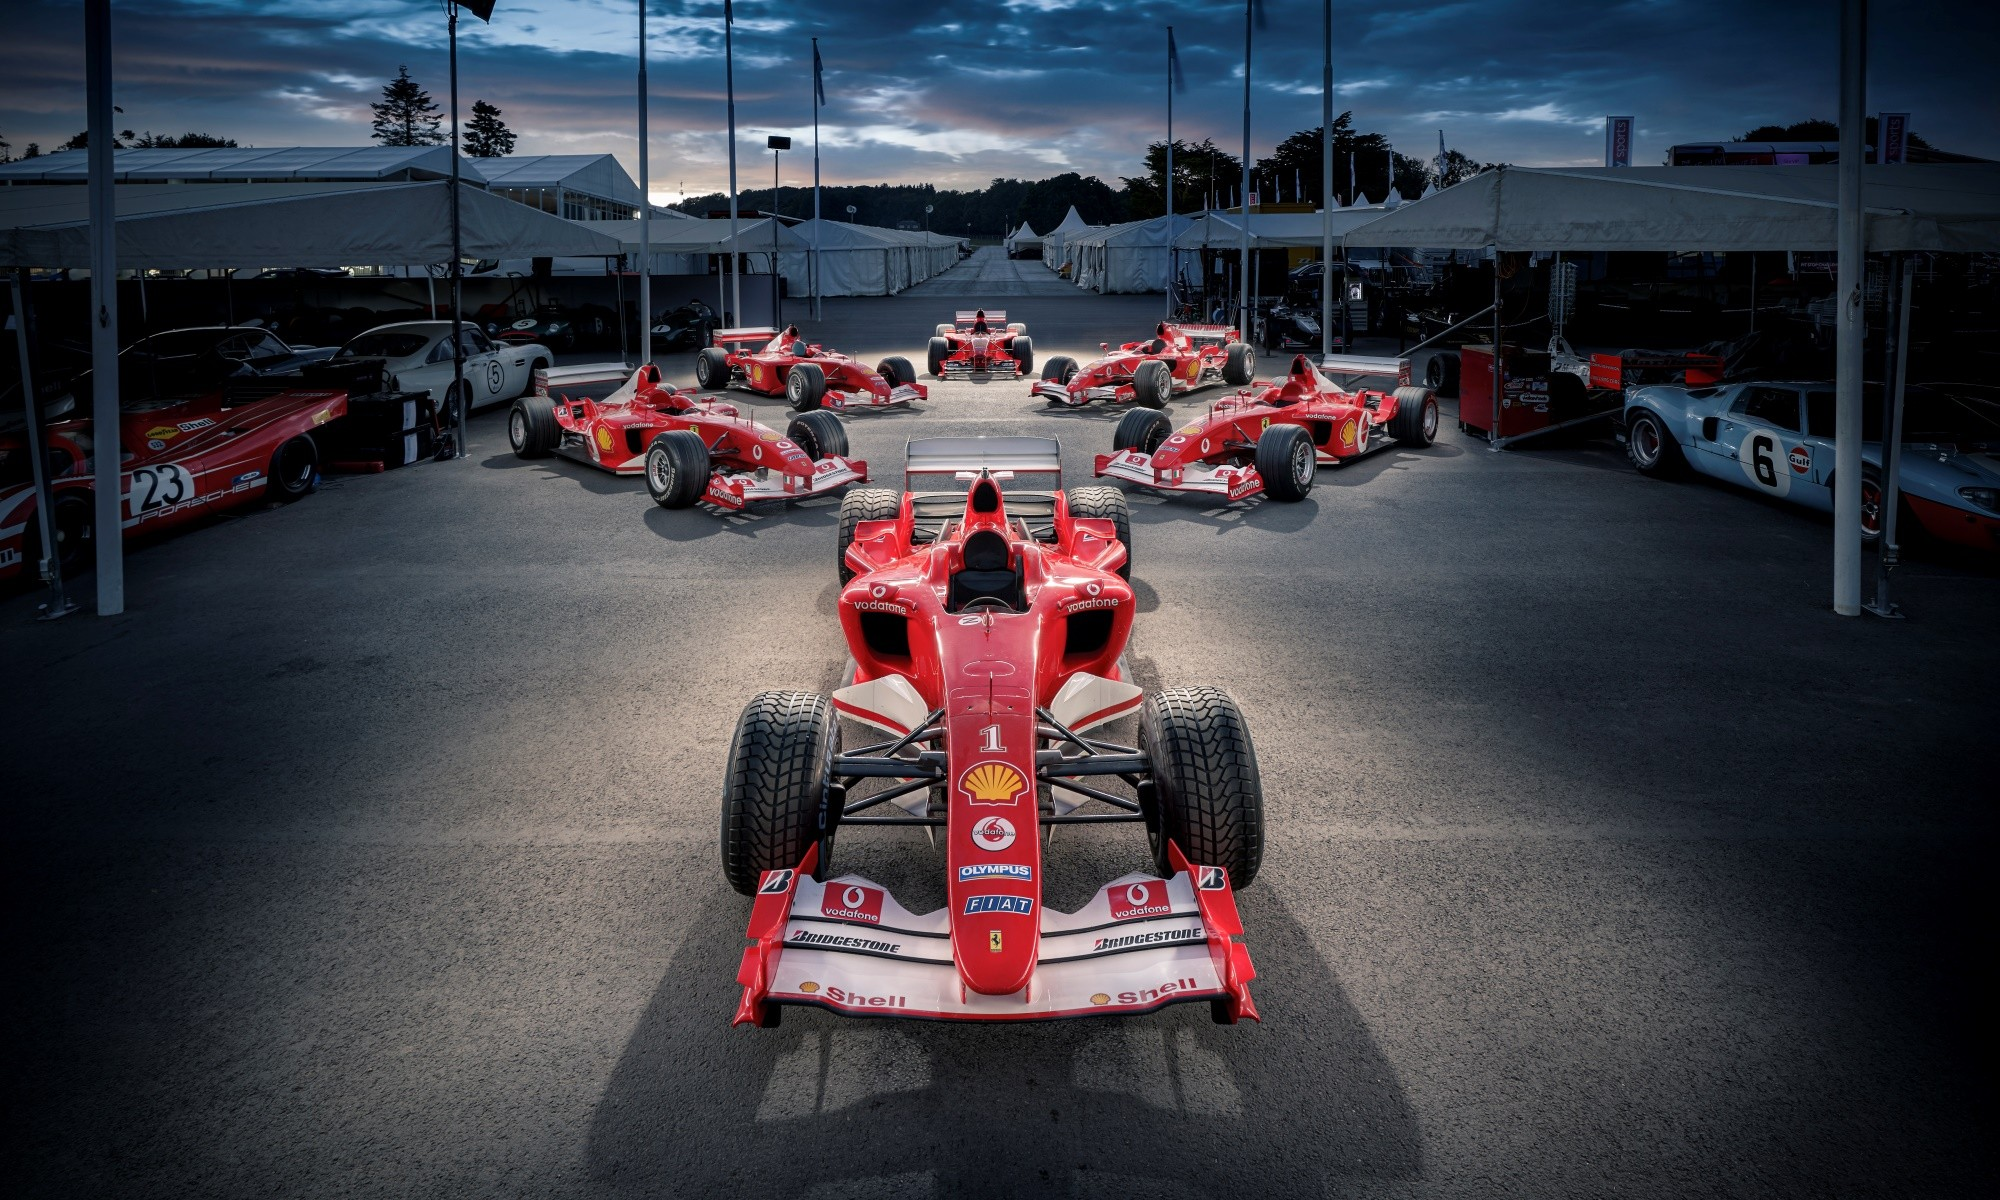 Michael Schumacher F1 Ferraris on show at 2019 Goodwood Festival of Speed